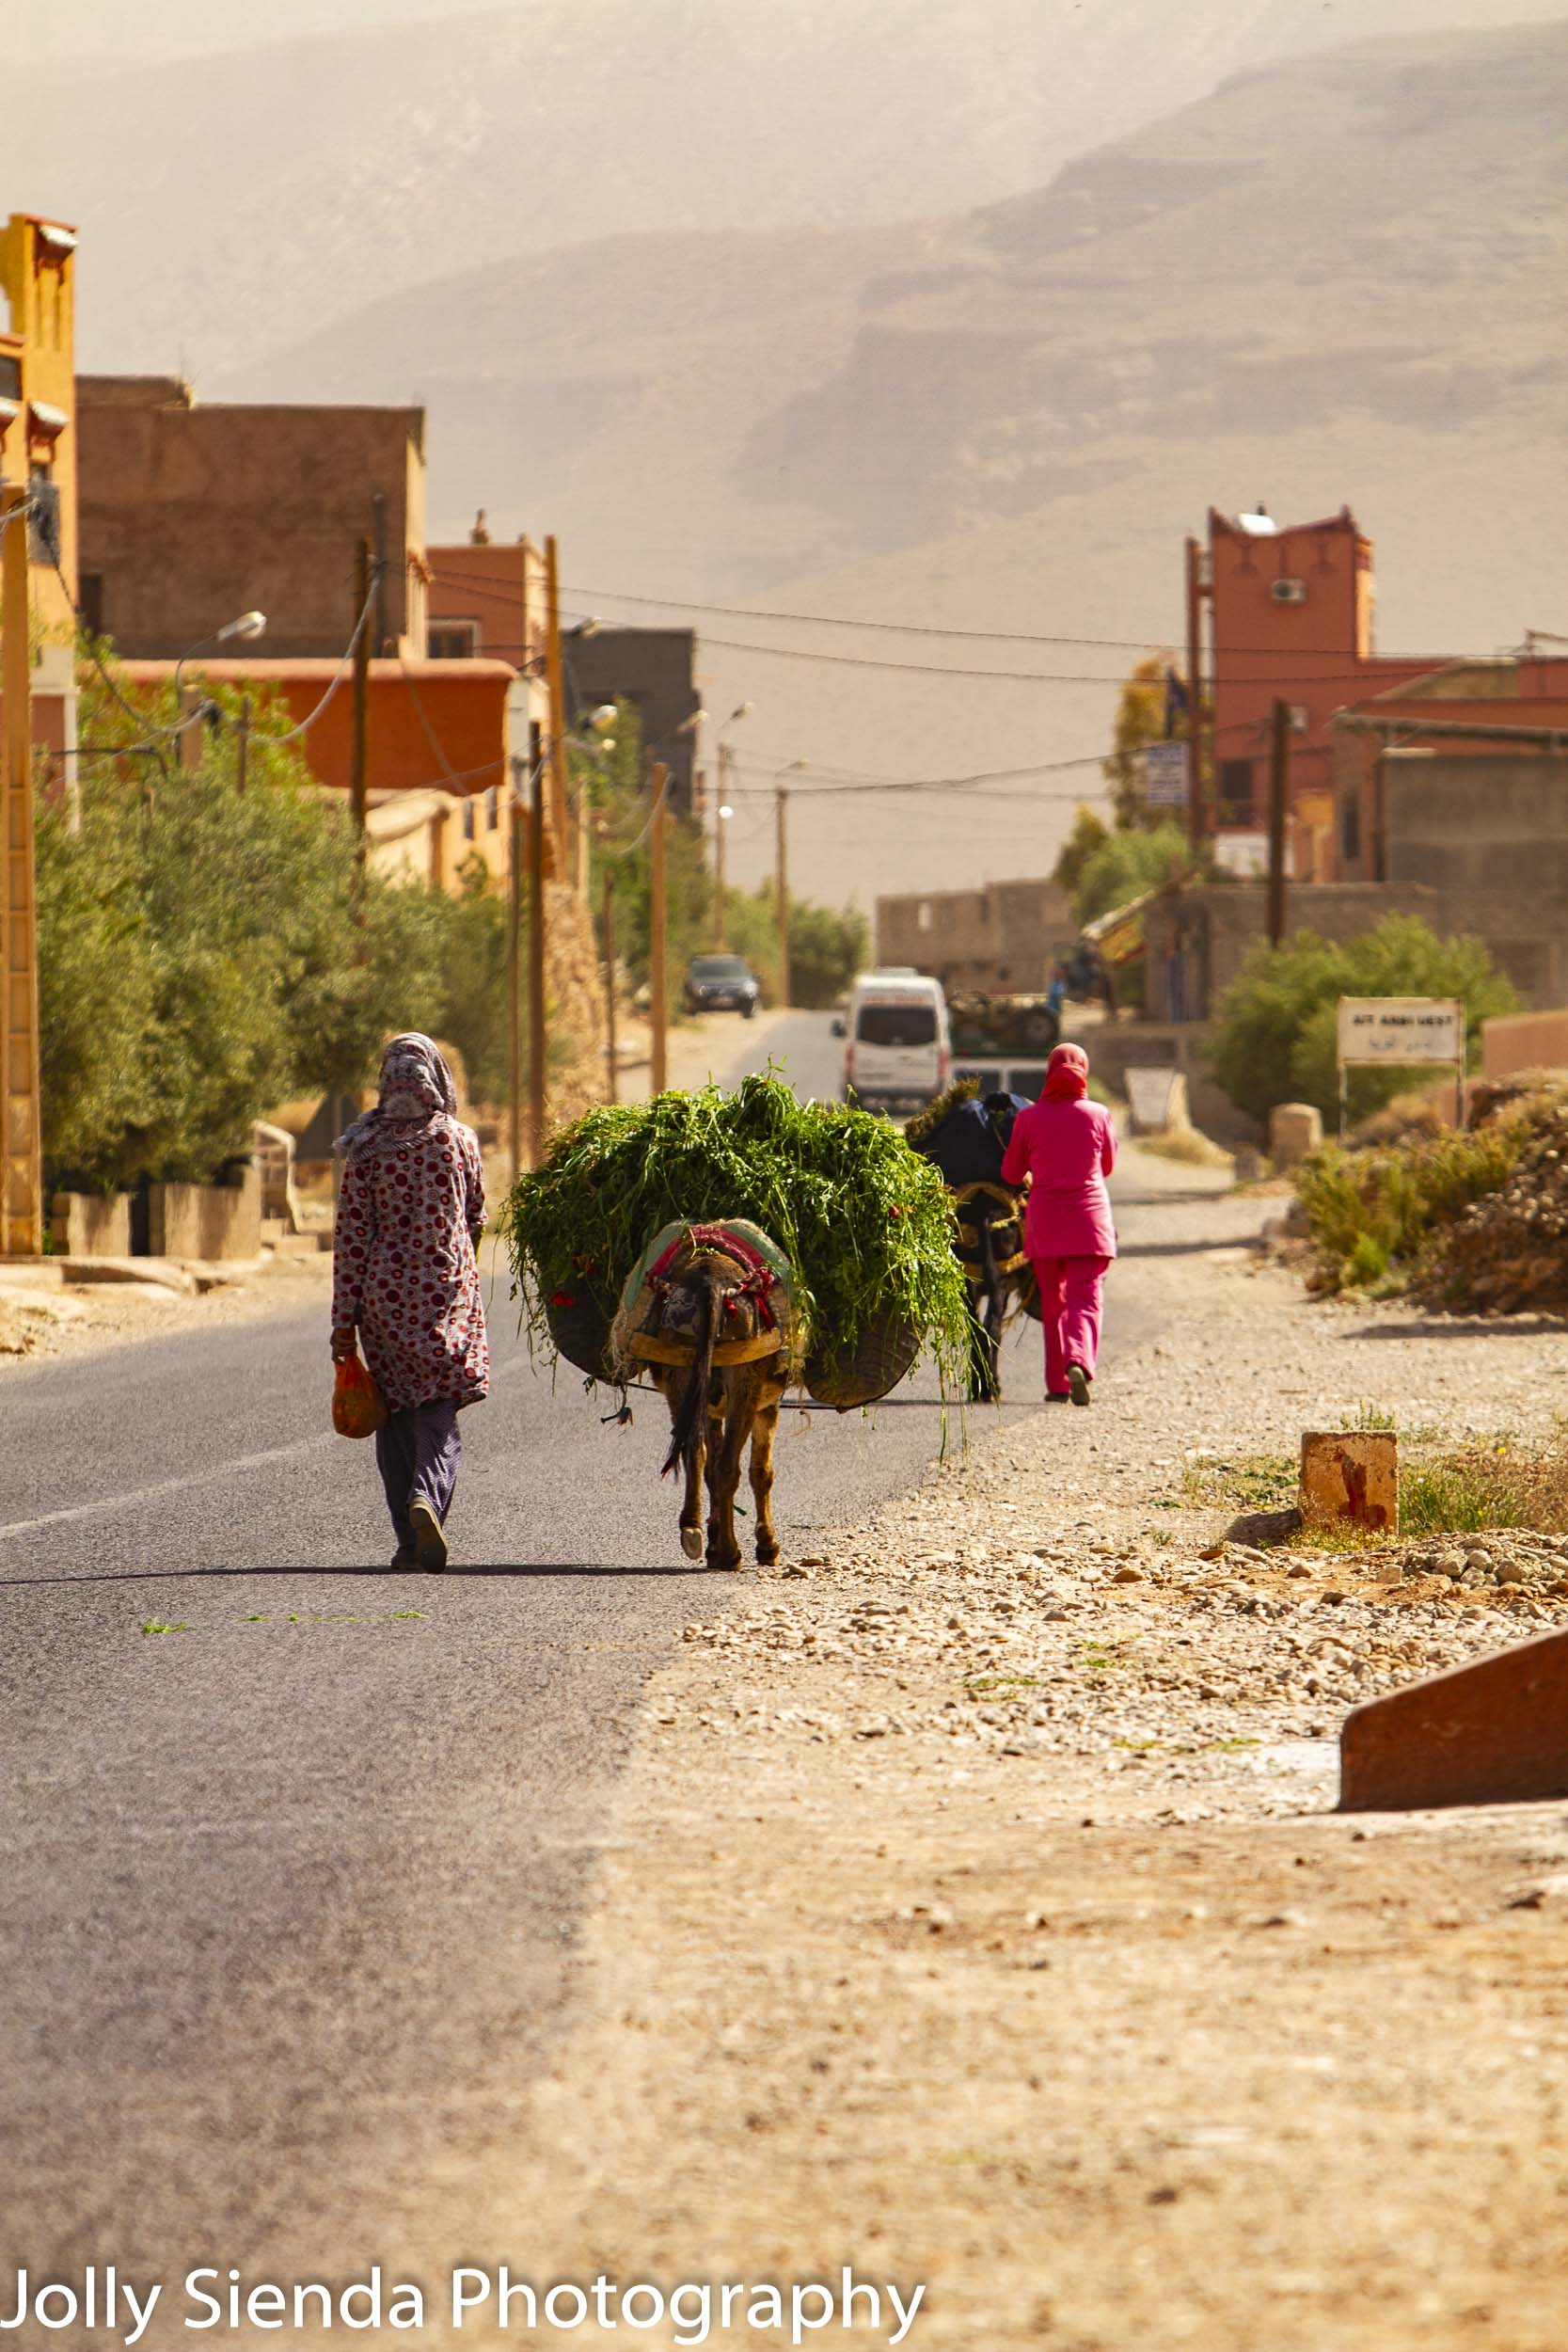 Muslim women and donkeys with grasses on the road